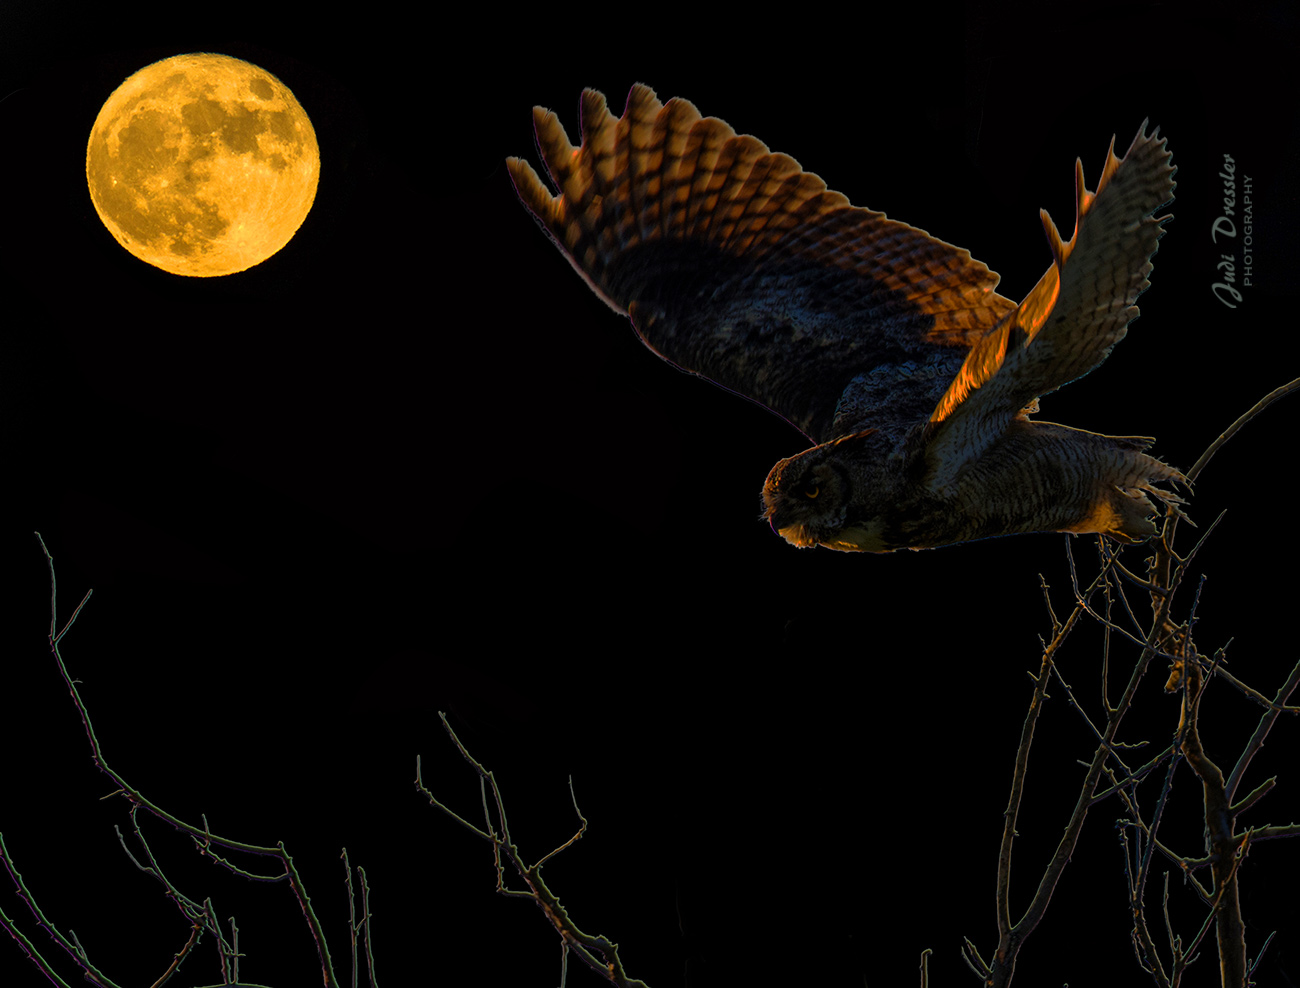 Moonlit Great Horned Owl